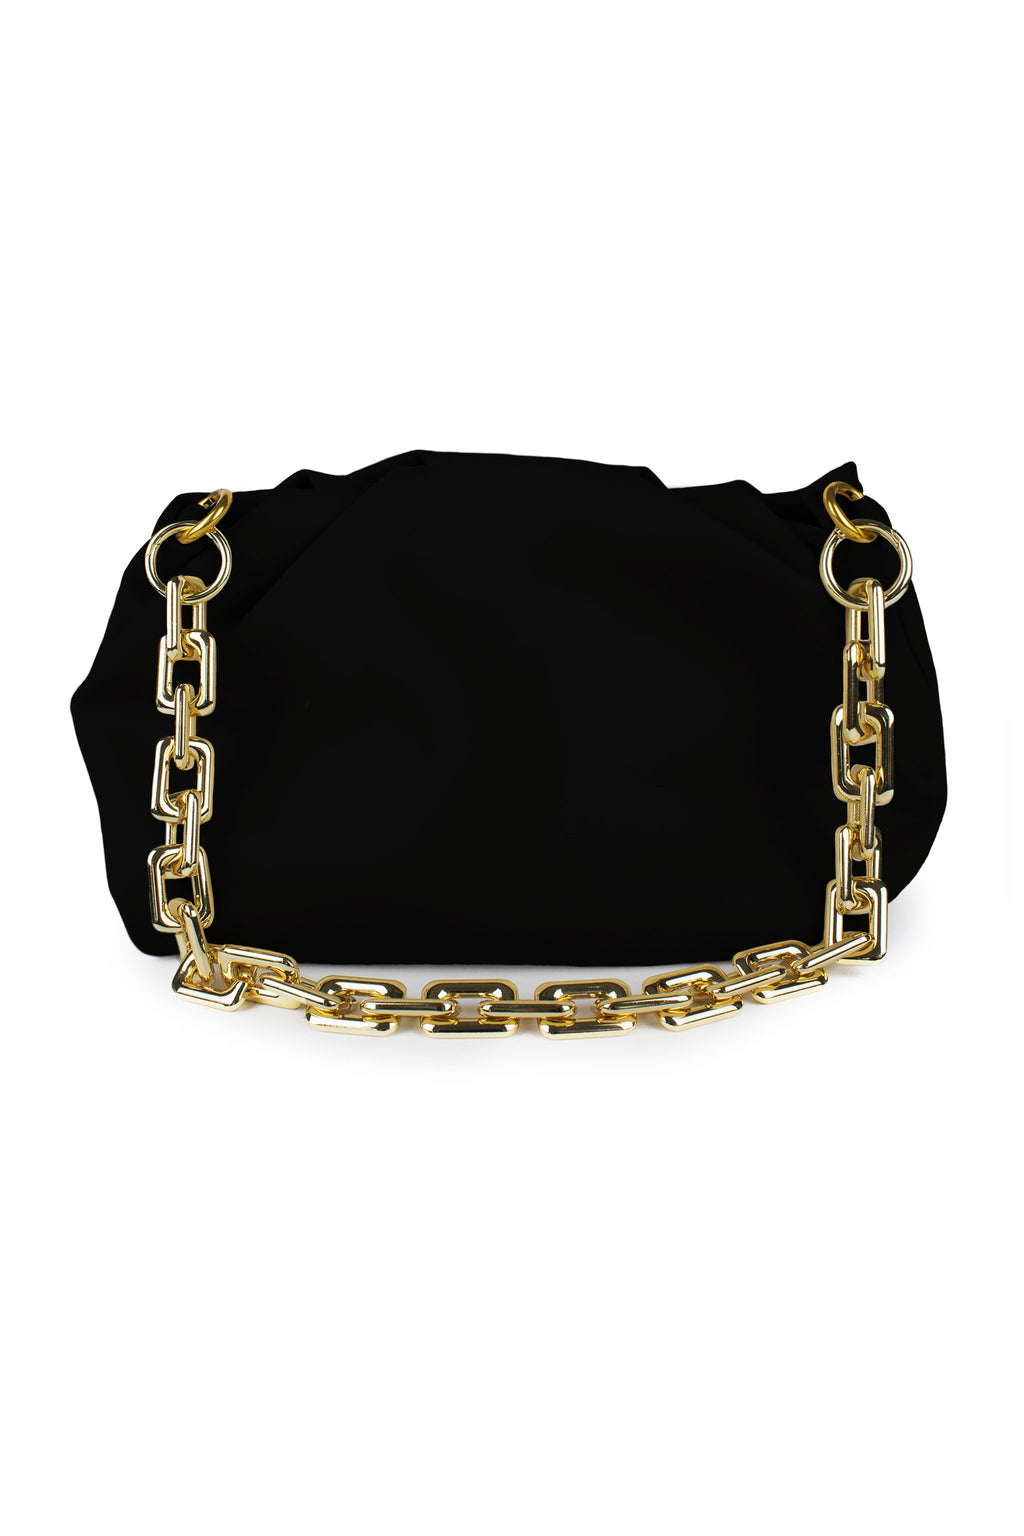 NAOMI BAG - BLACK LEATHER - DUCIE LONDON